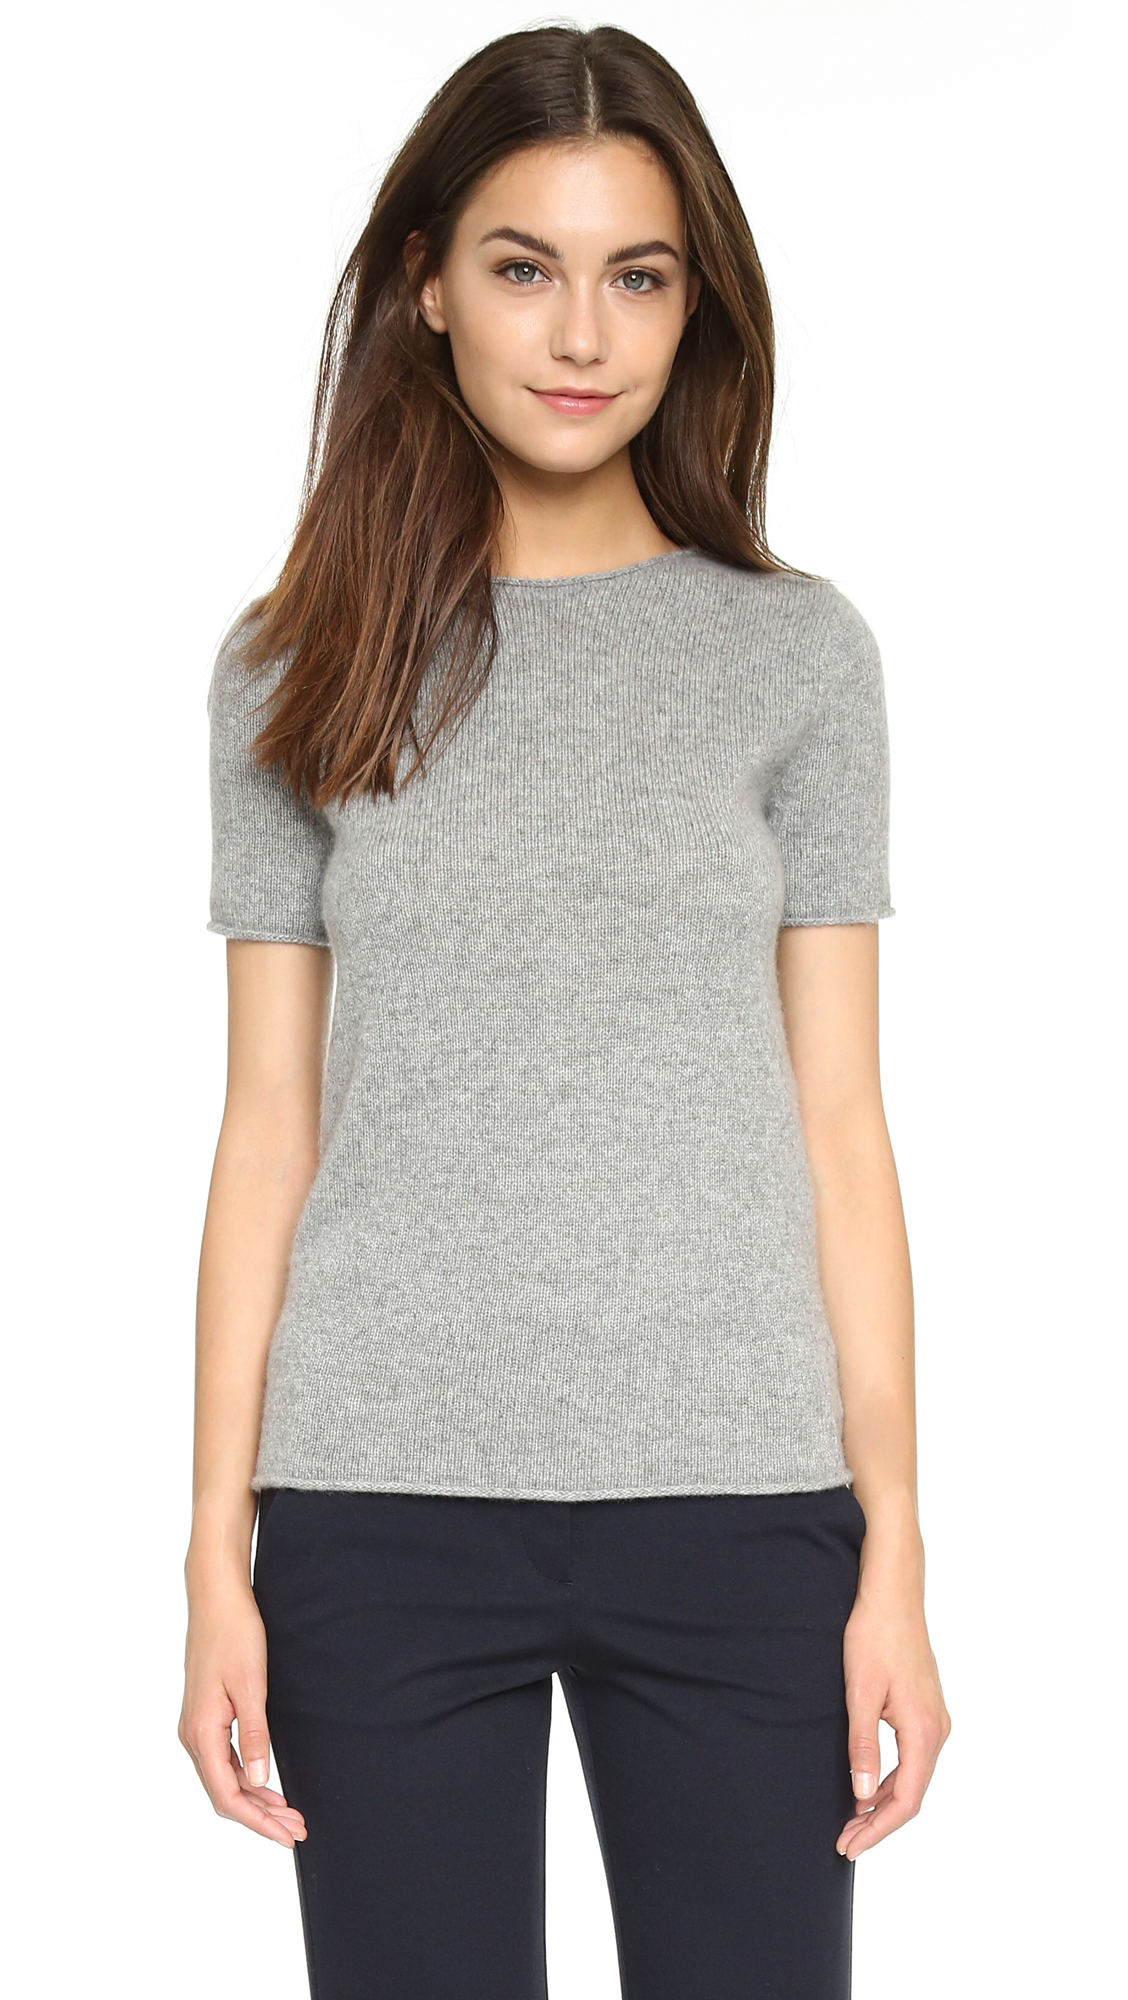 Theory Cashmere Tolleree Short Sleeve Sweater in Gray | Lyst